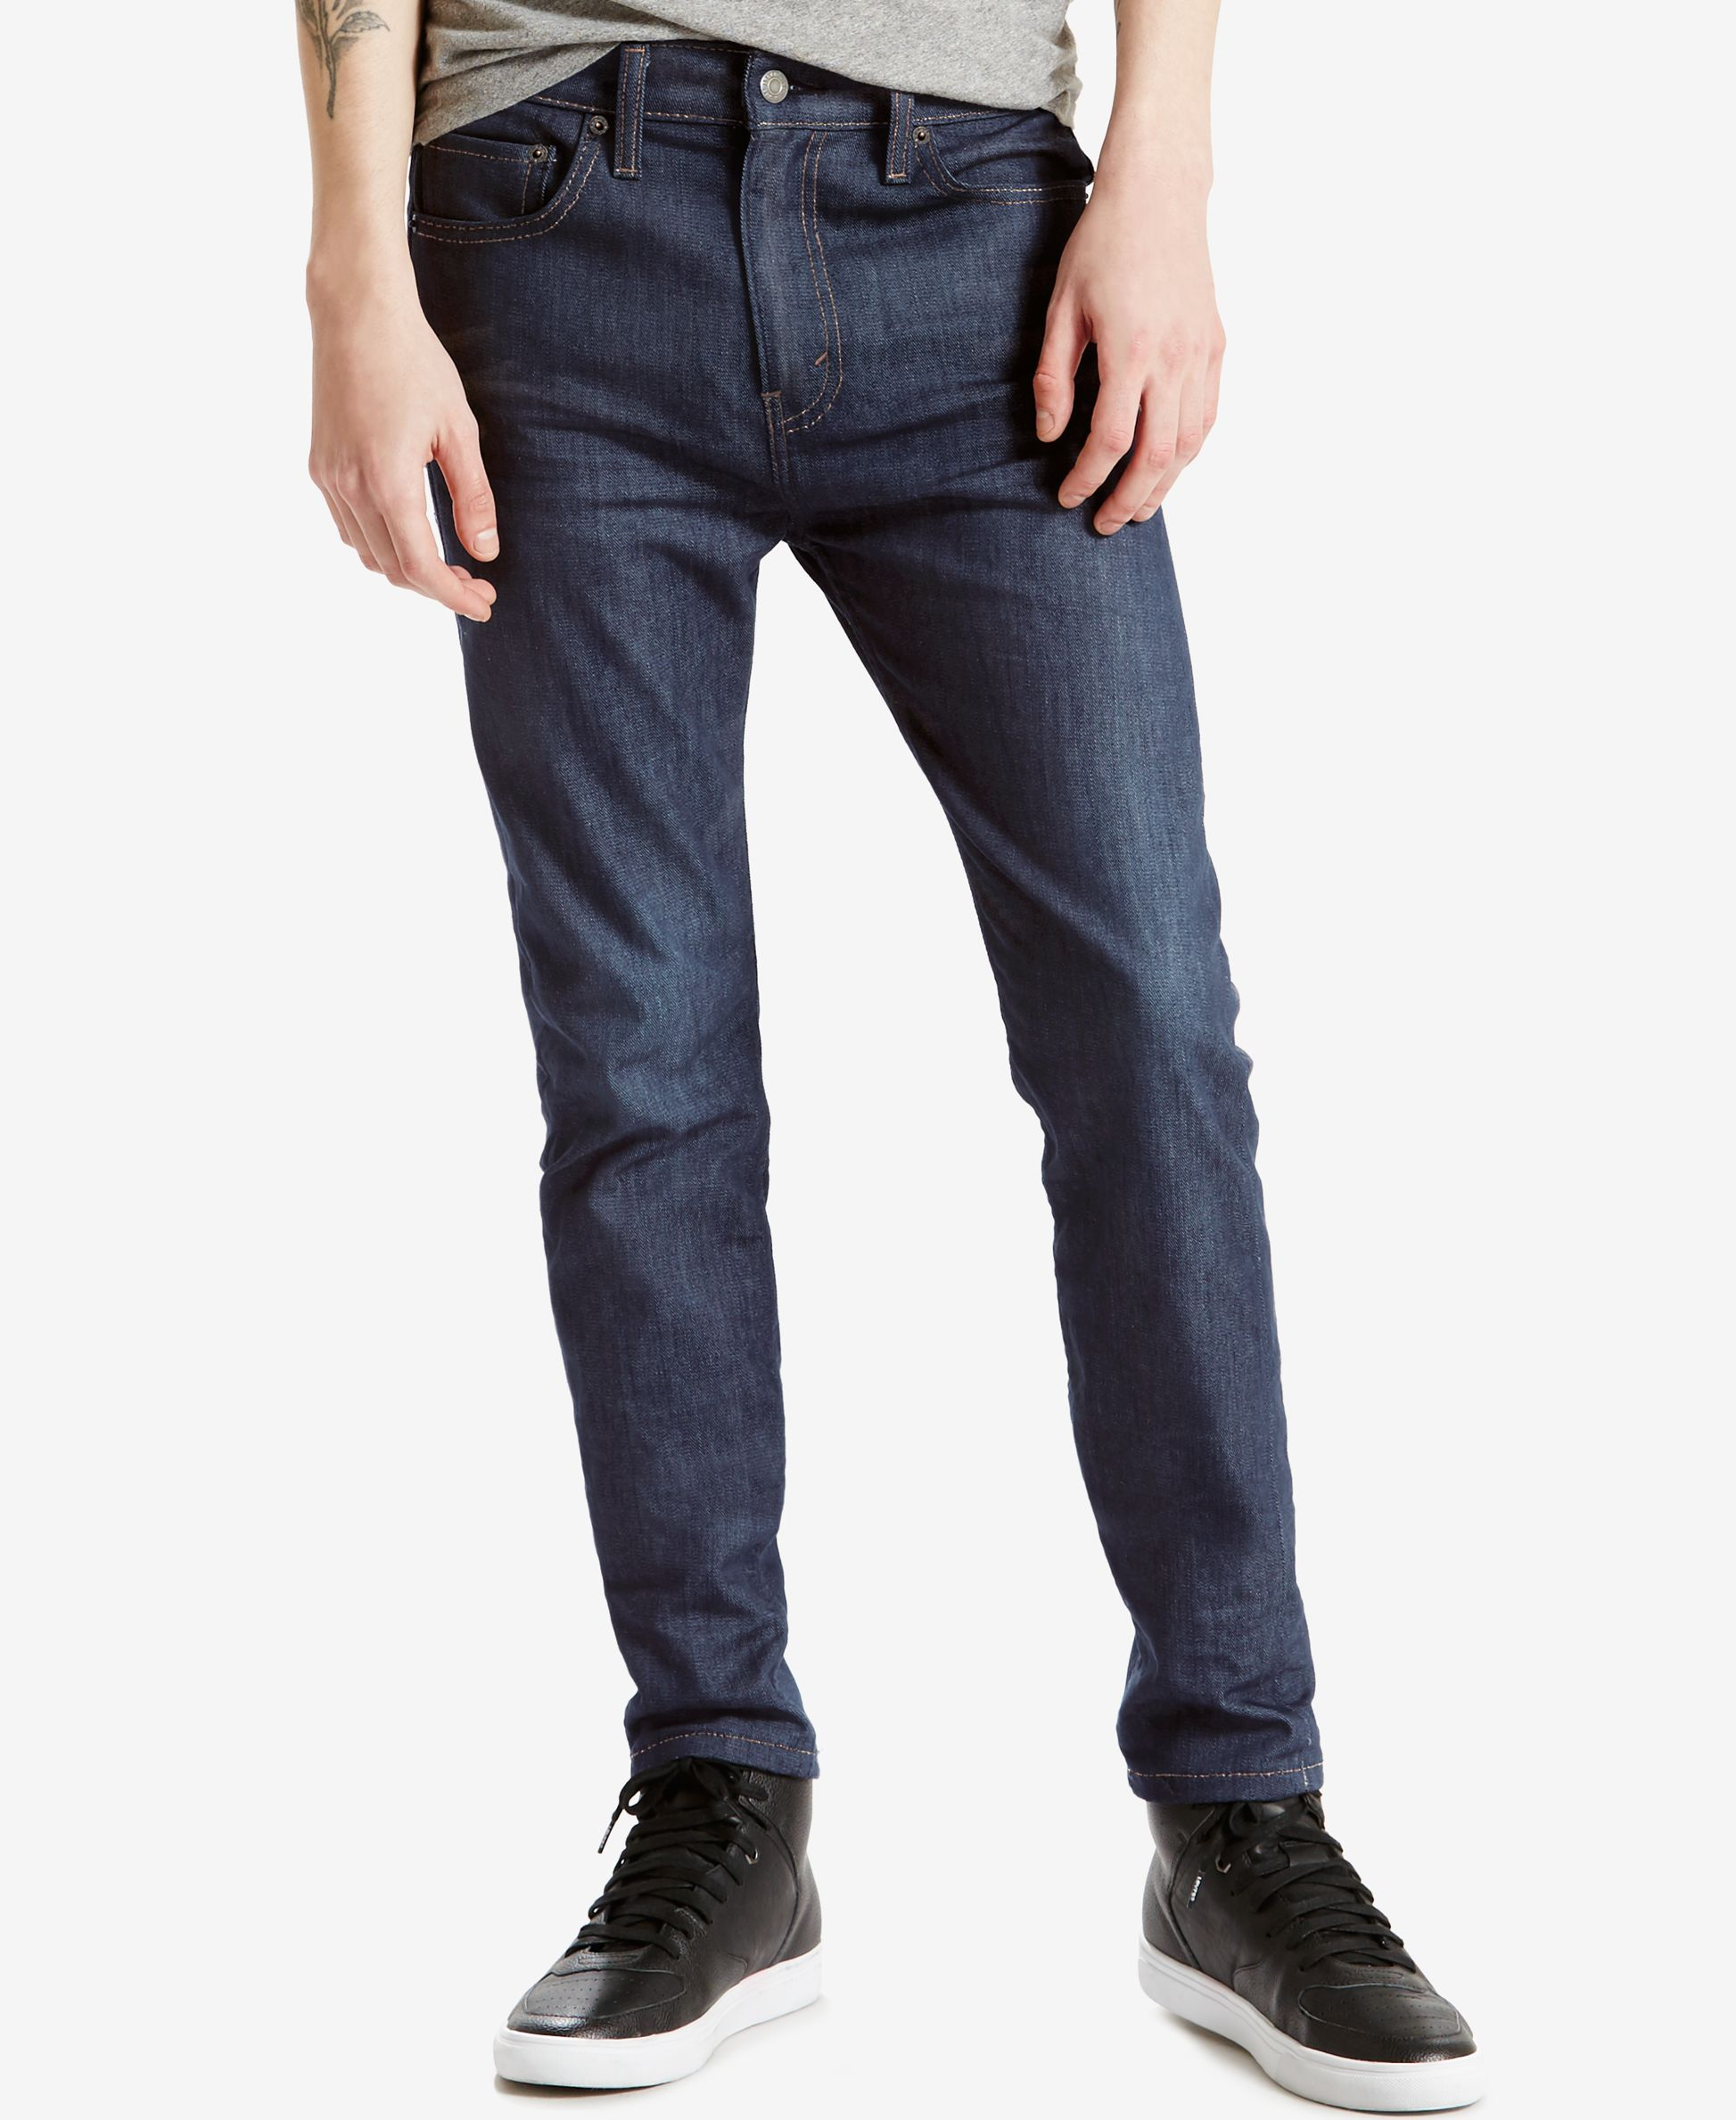 7d5465597ad Levi's Men's 510 Skinny-Fit Commando Jeans | Products | Skinny fit ...